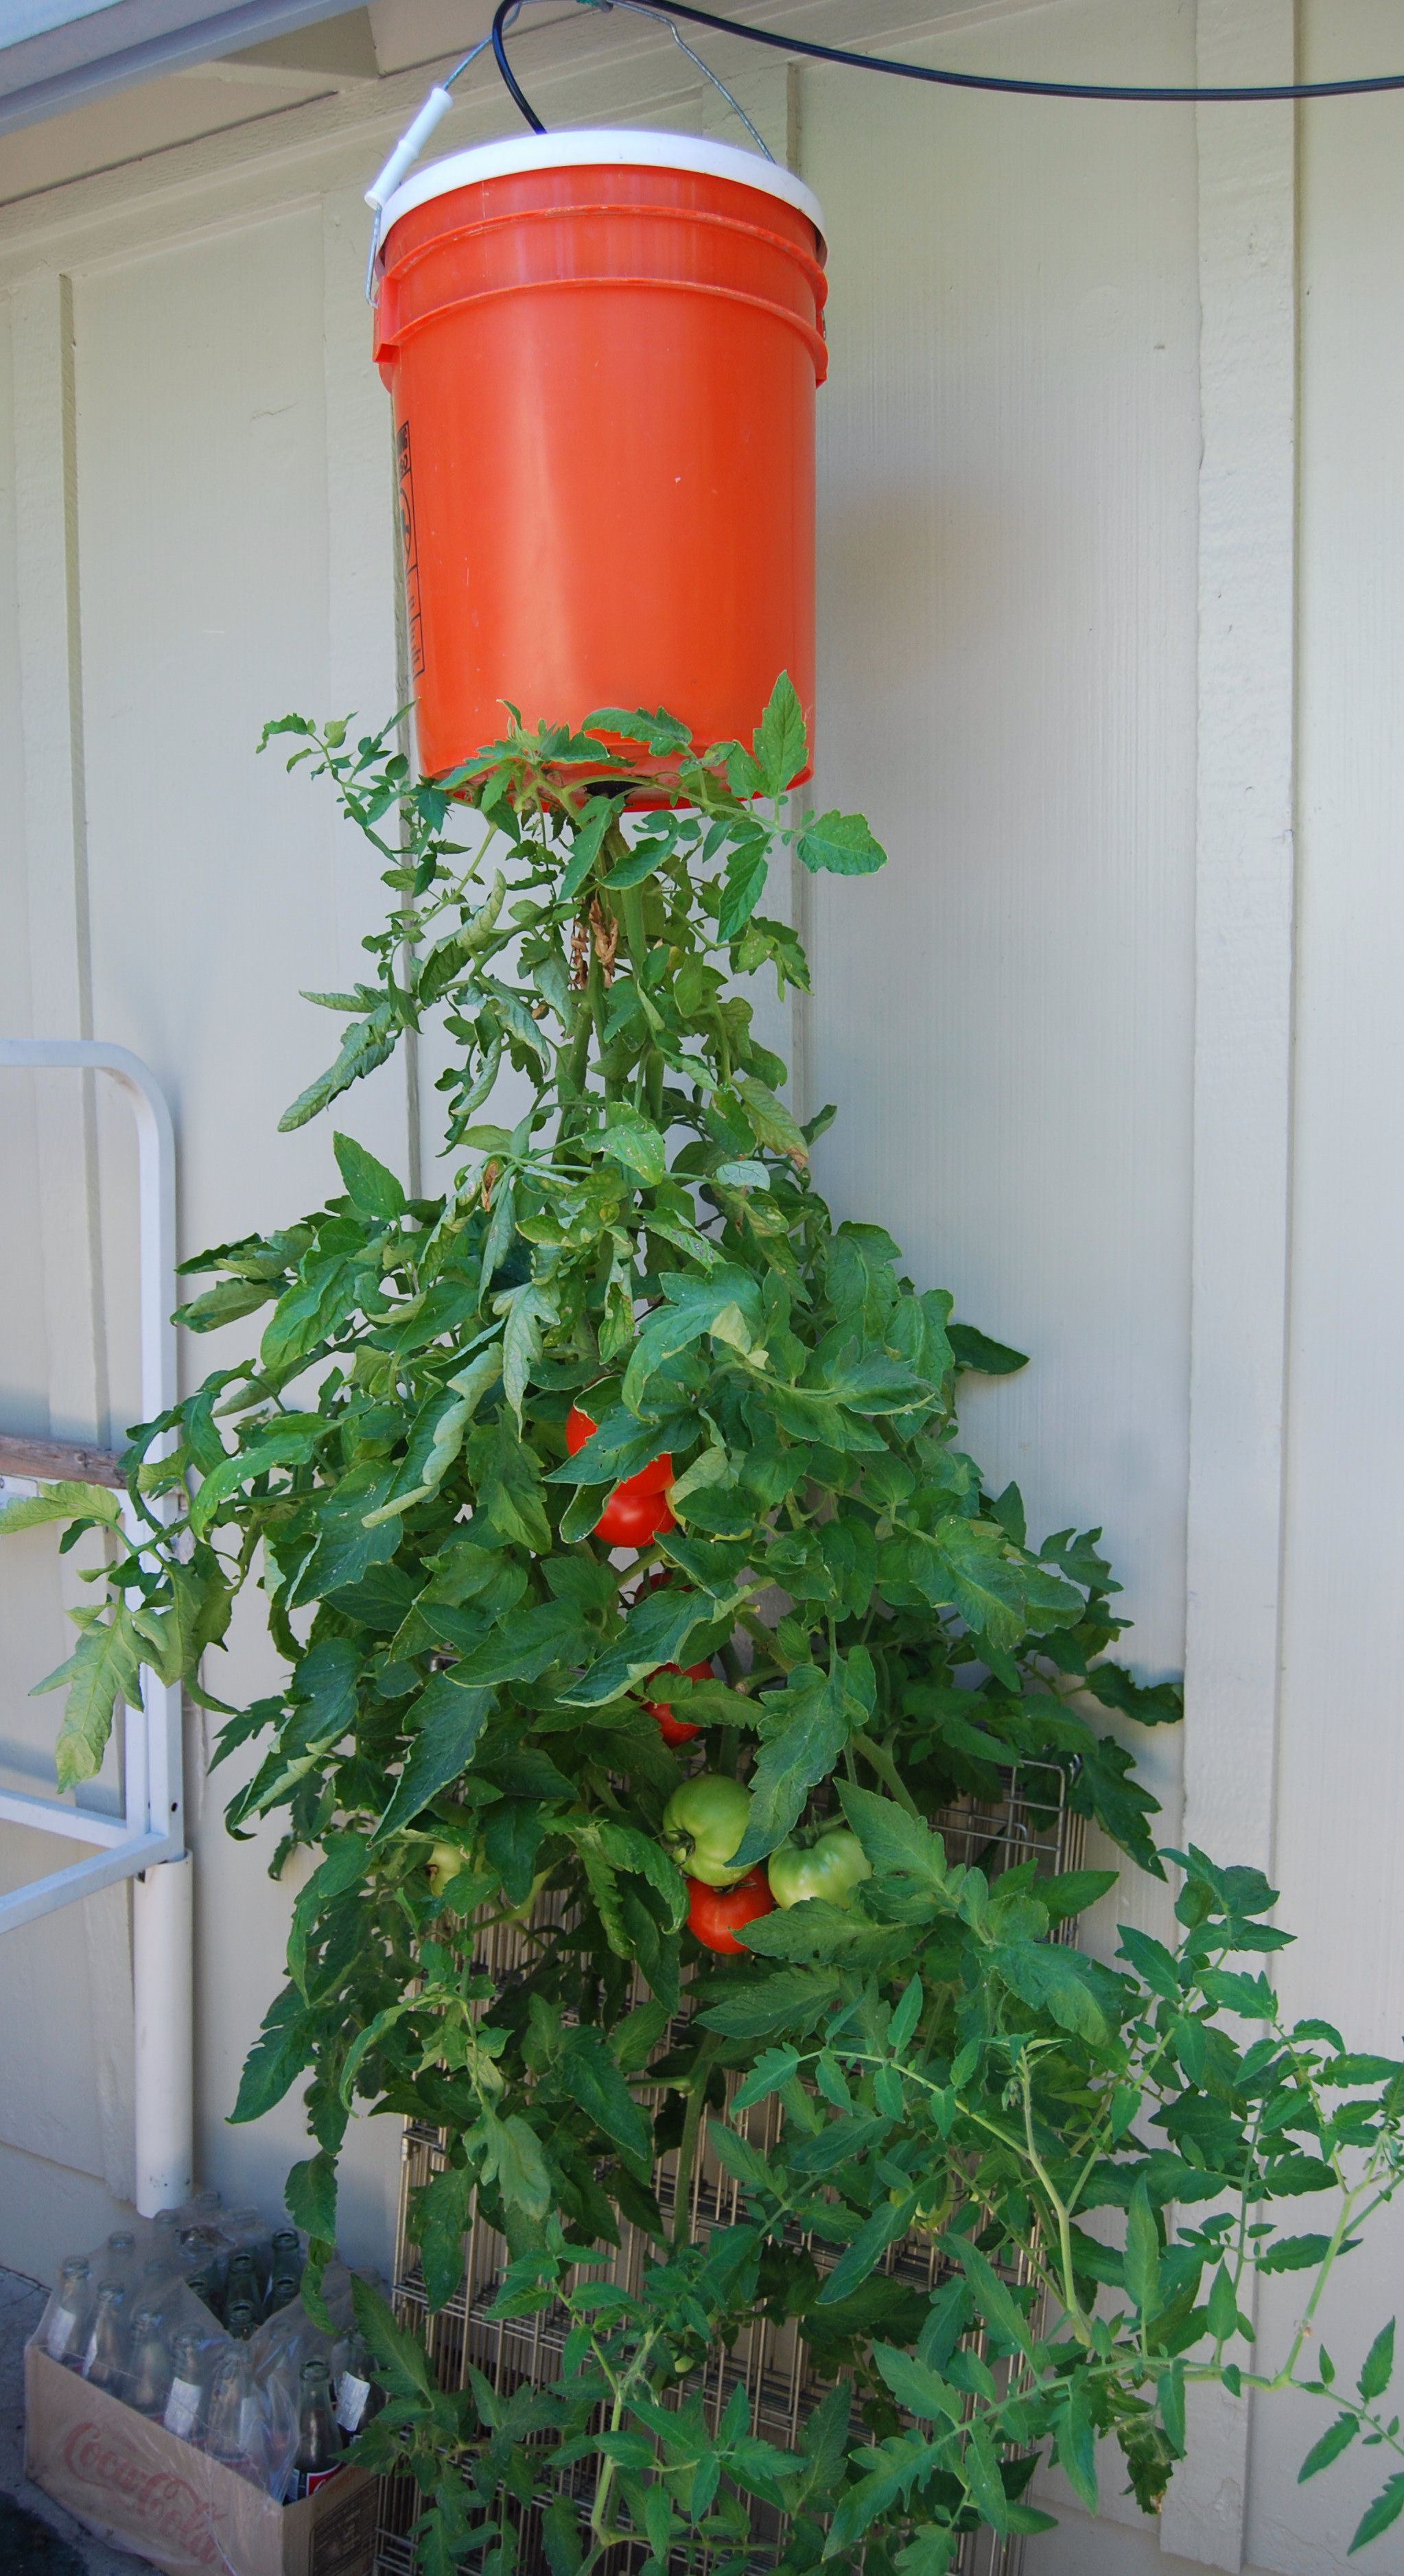 How to plant tomatoes in a garden - 17 Best Images About Strawberry Planters On Pinterest Gardens Planters And Strawberry Plants